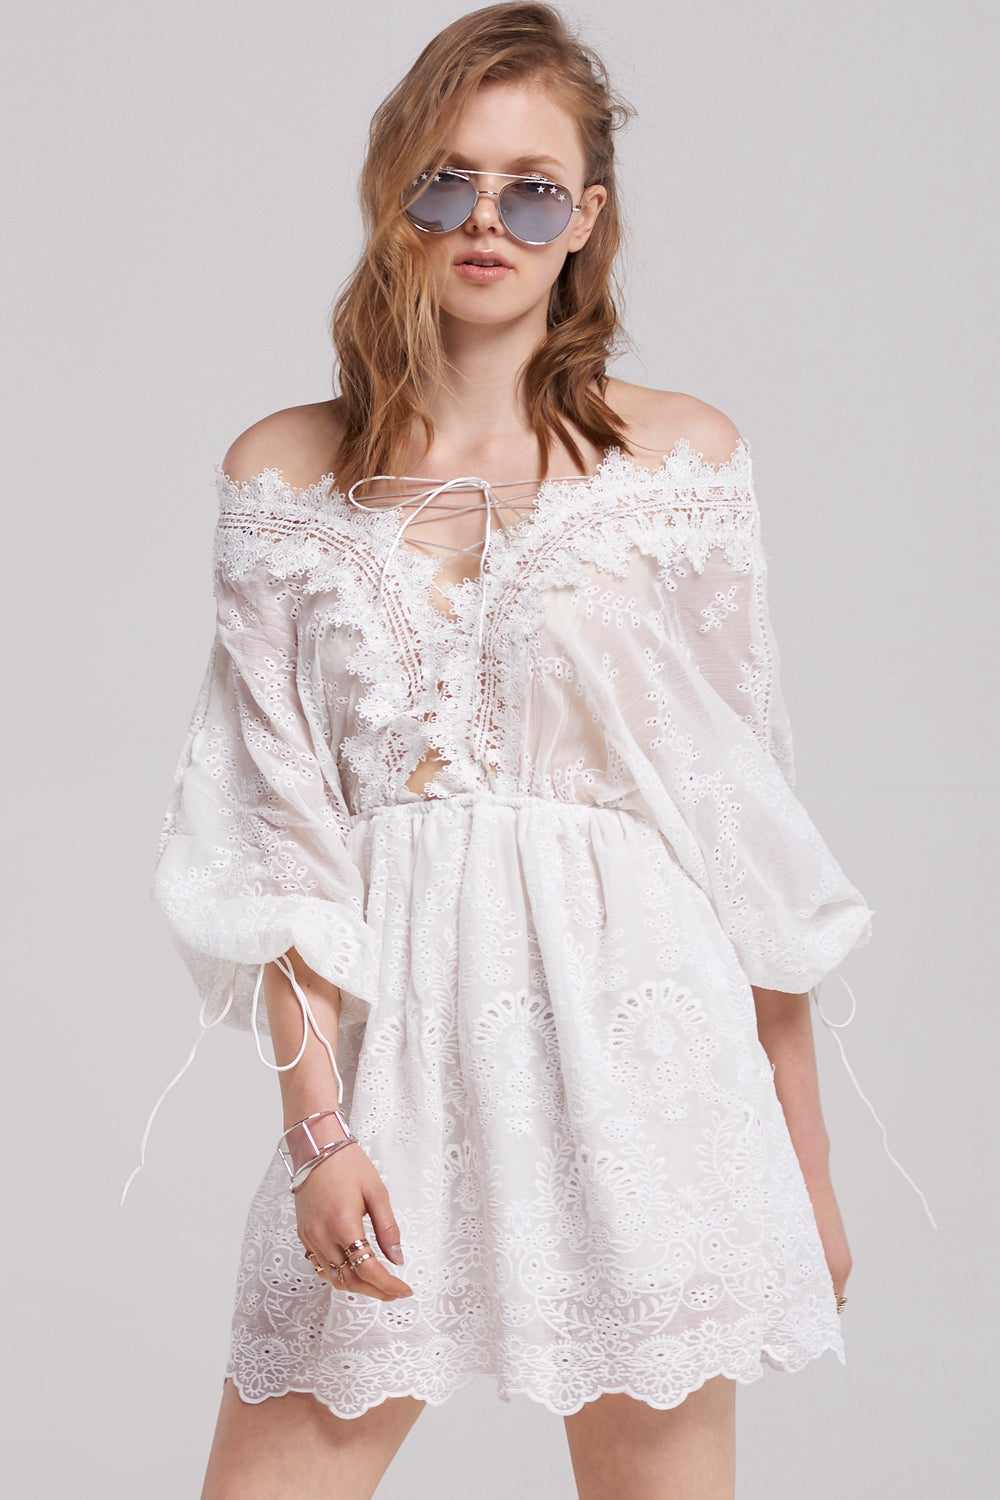 Vicky Valentine Lace Dress